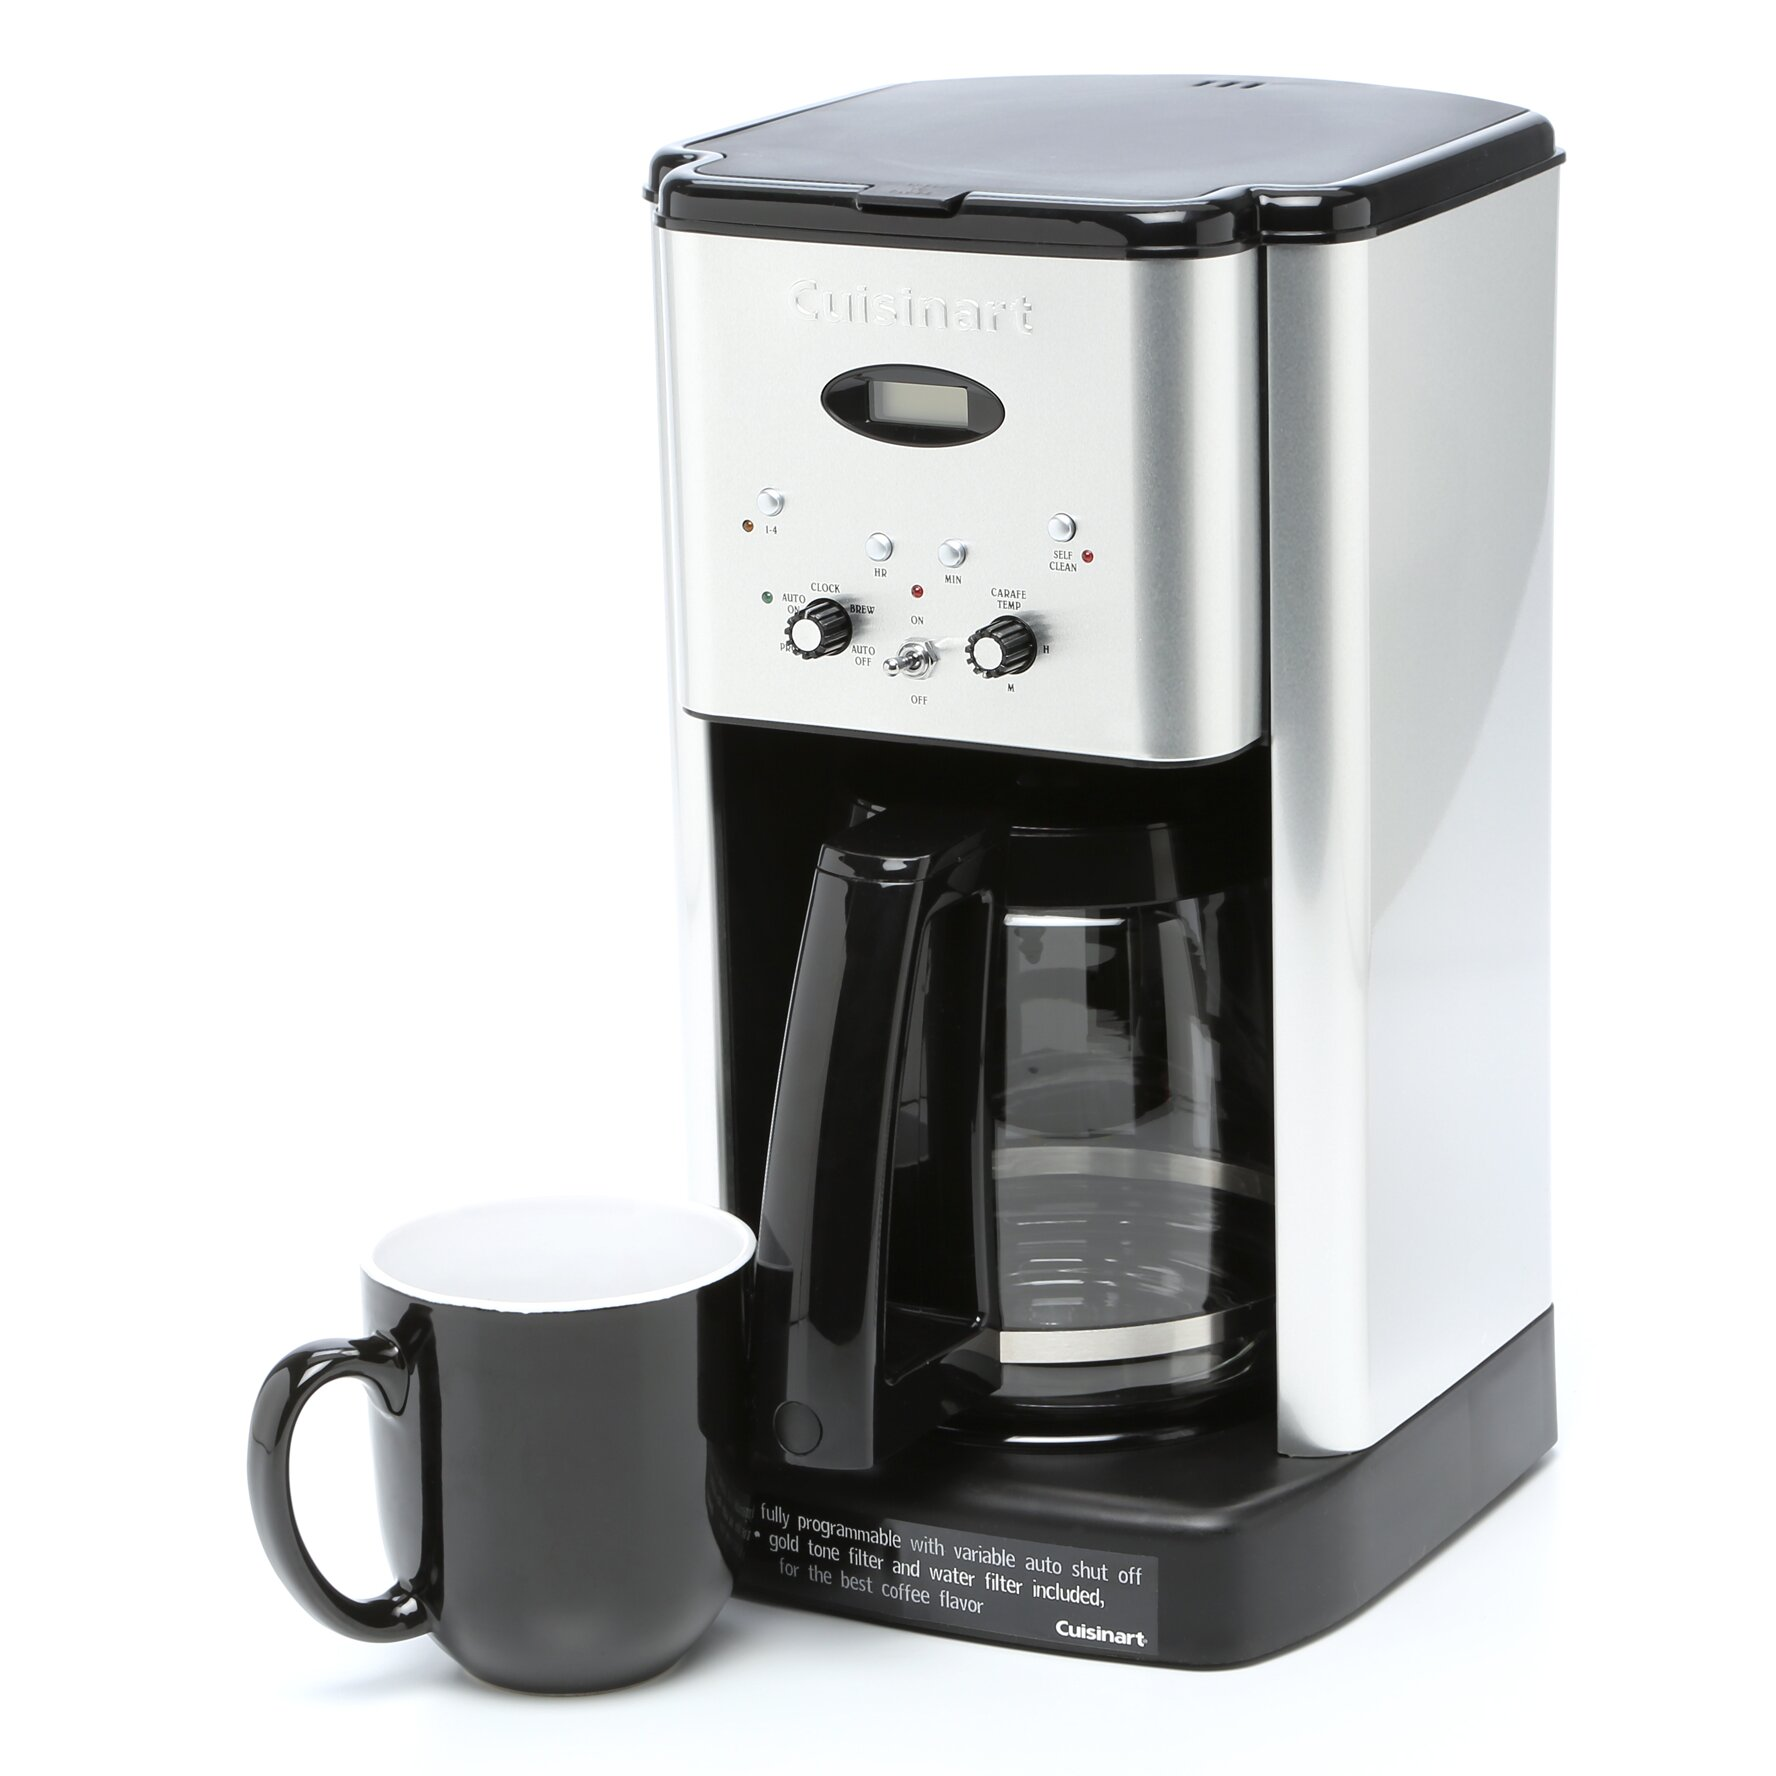 Cuisinart 12 Cup Brew Central Programmable Coffee Maker